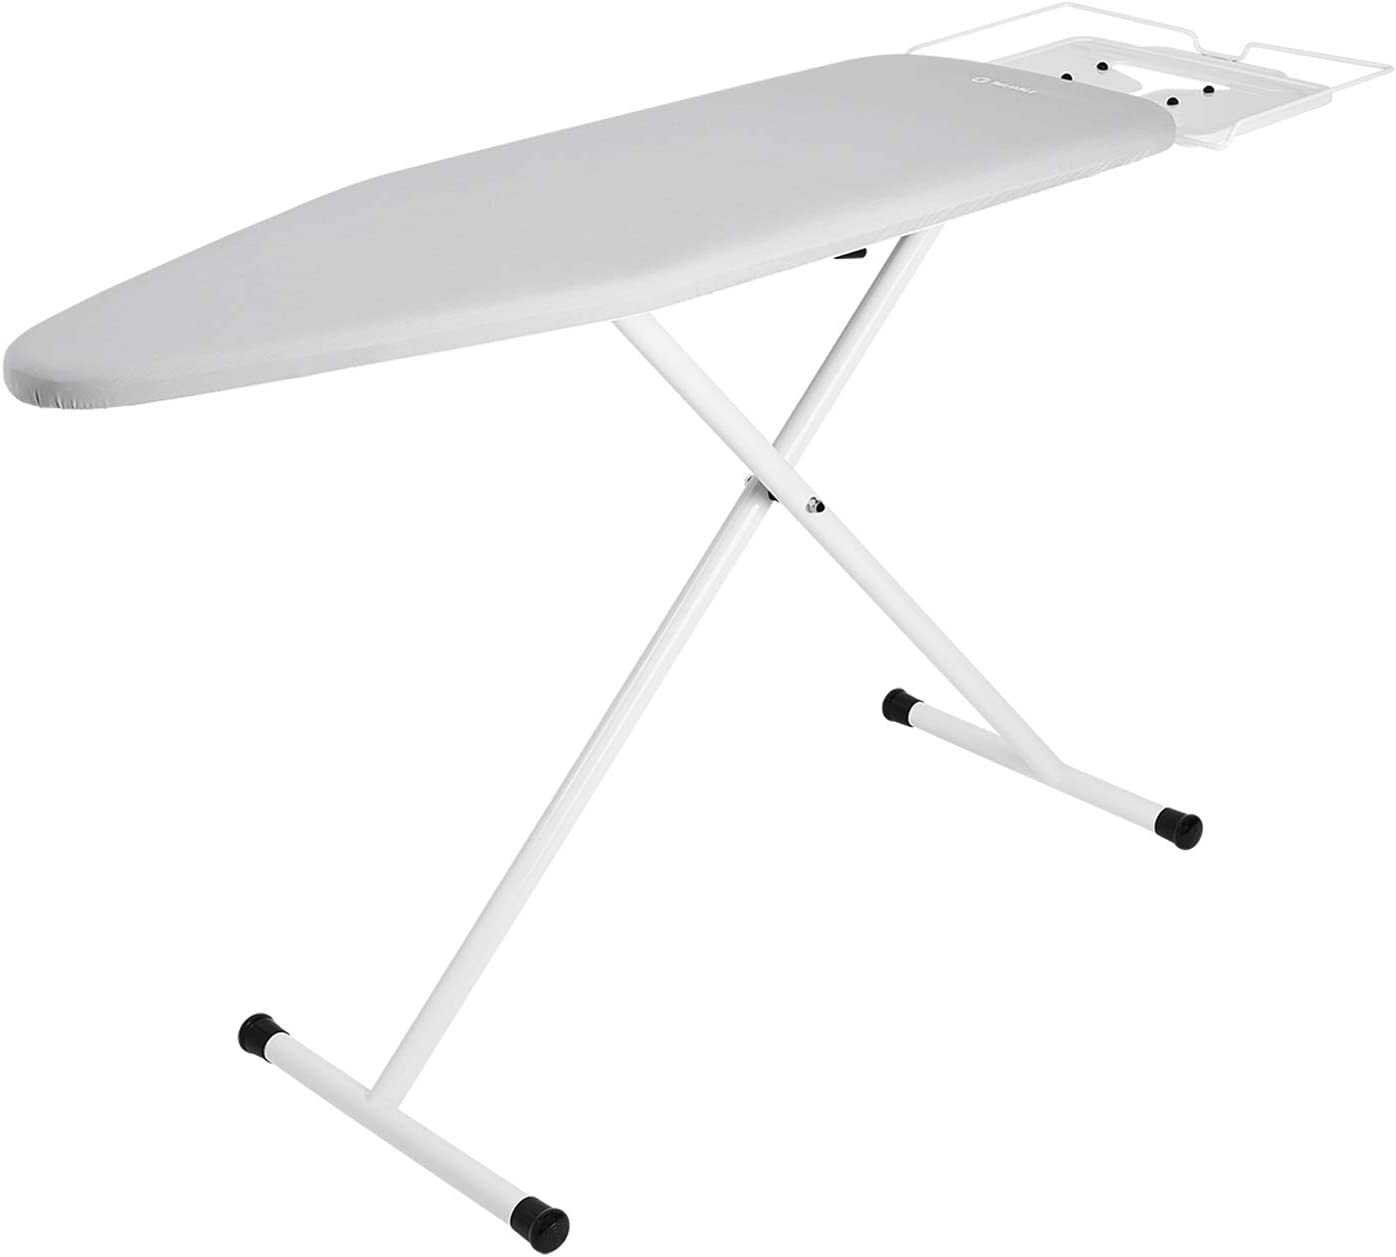 Reliable 60IB Home Ironing Board - 15